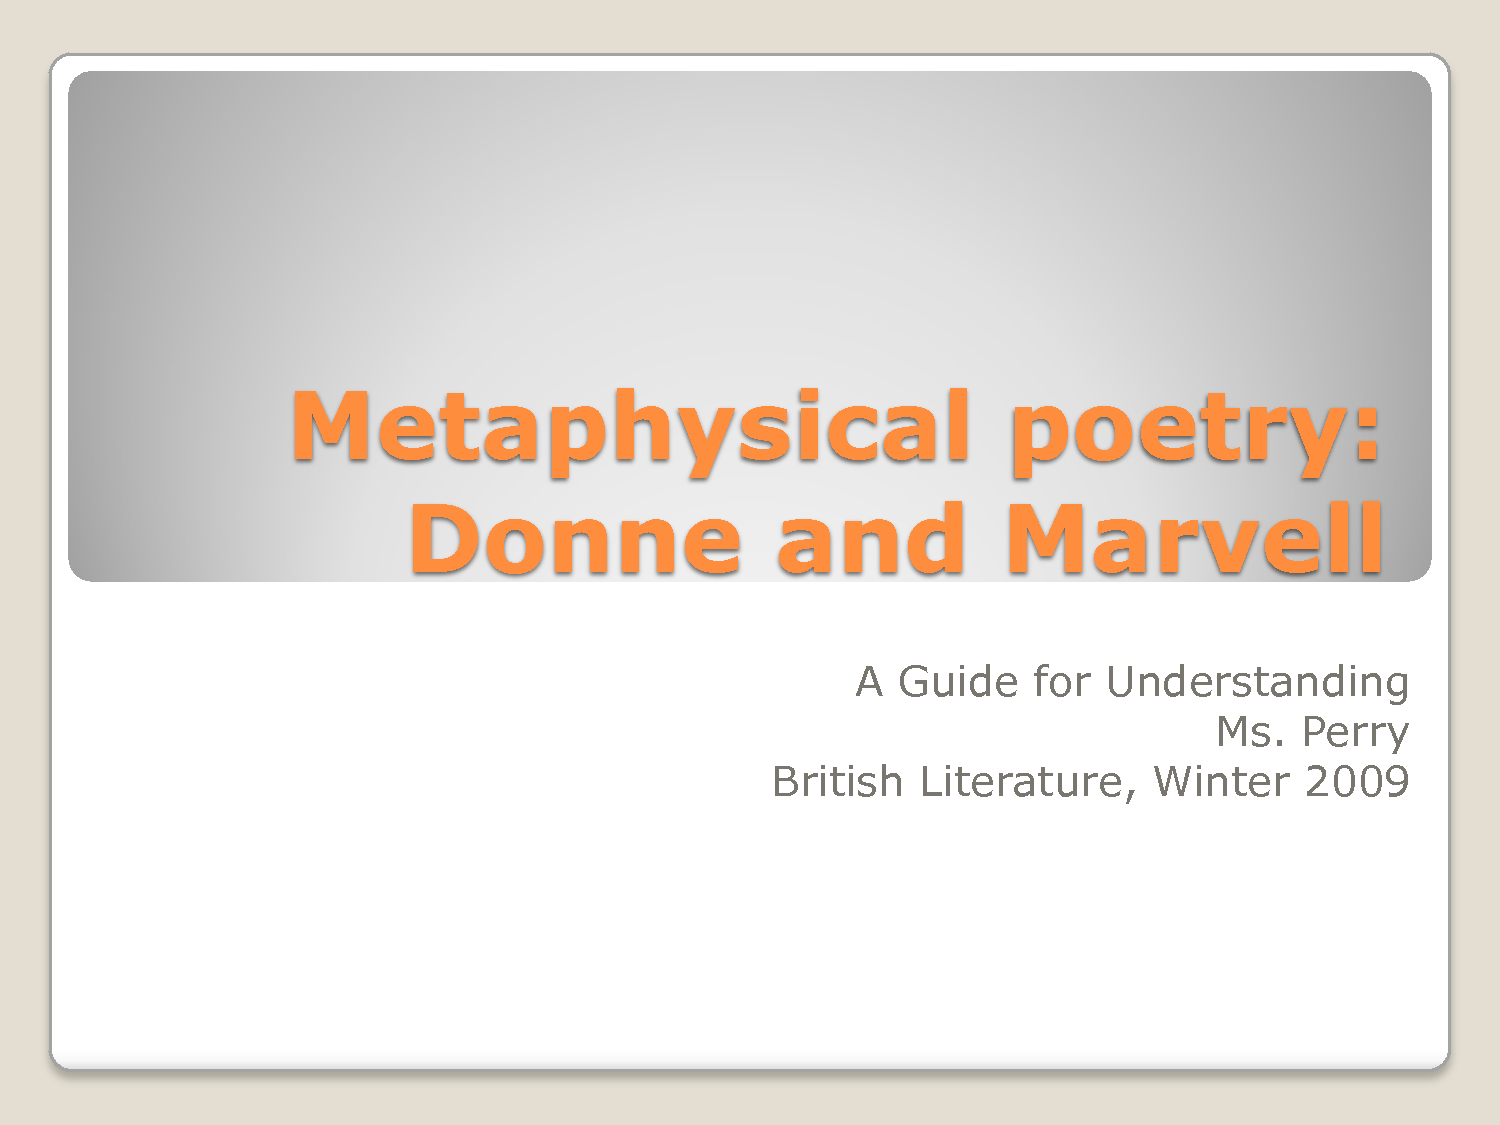 metaphysical poetry essay Answer: metaphysical poetry is distinguished by several unique features unique metaphors, large and cosmic themes, absence of narrative, and philosophical ideas donne invented or originated many of these features in his poetry, and he was a master of this type.